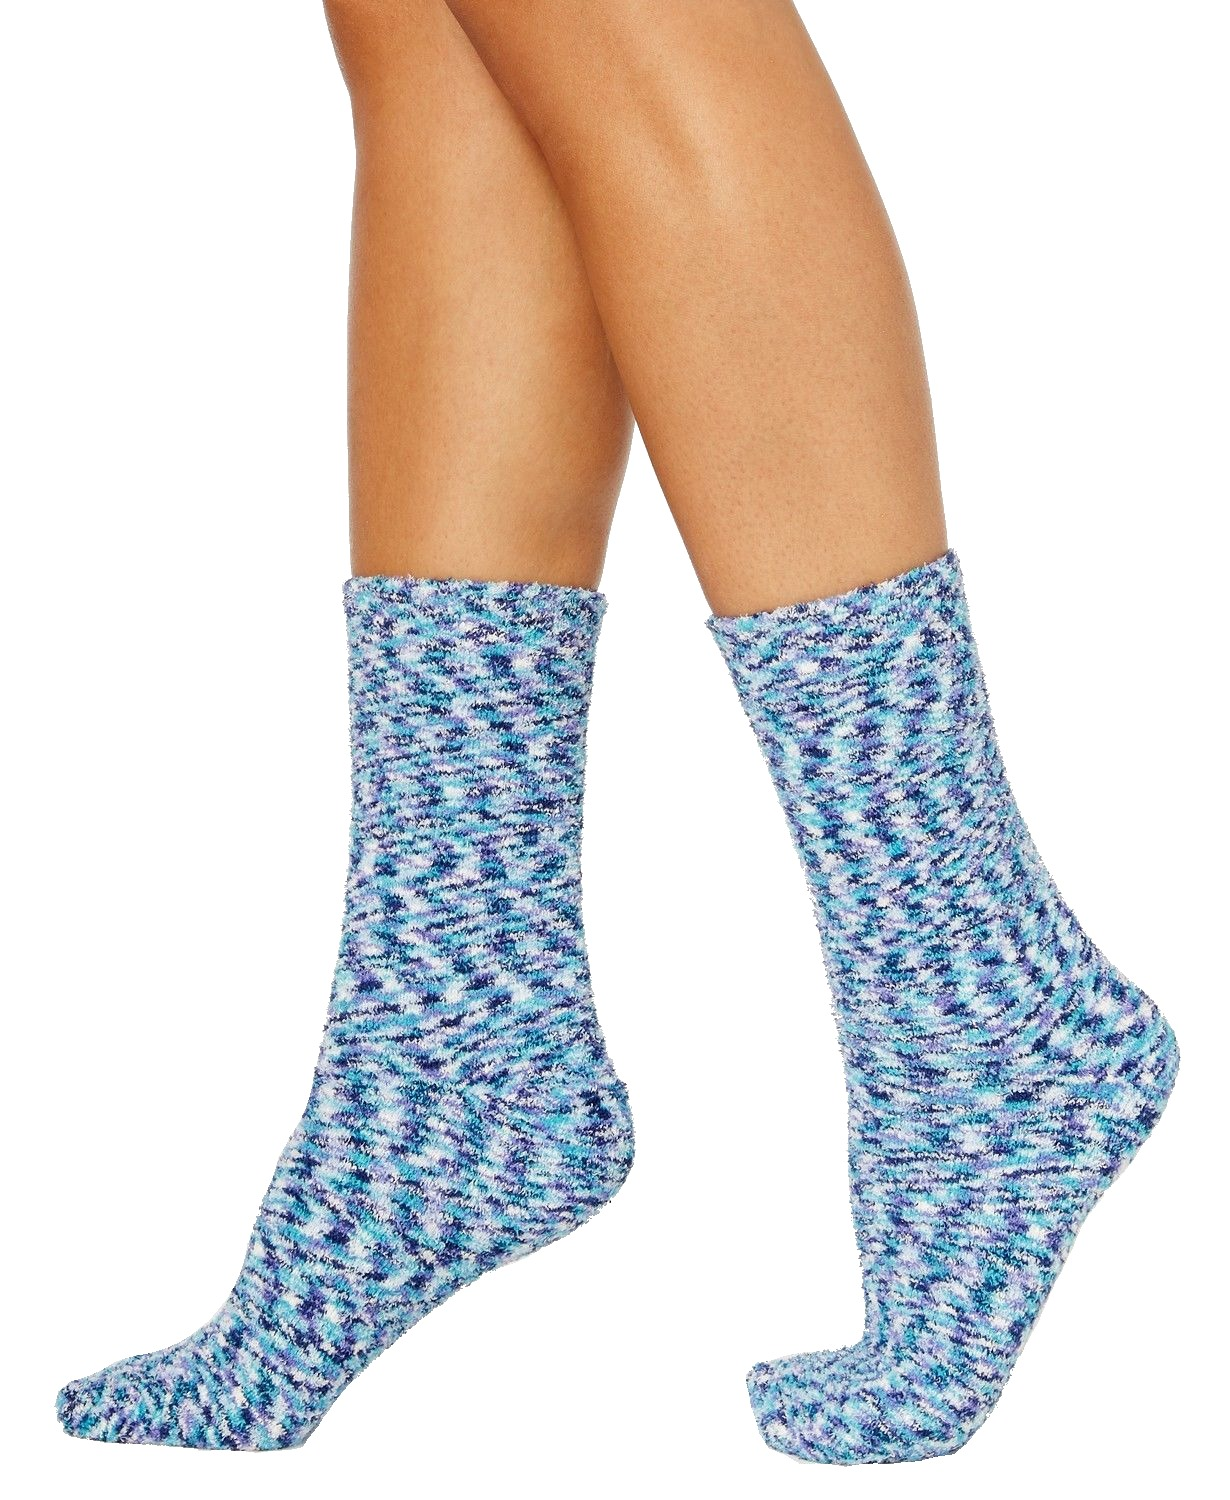 Charter-Club-NEW-Women-039-s-Butter-Supersoft-Cozy-Warm-Fuzzy-Socks